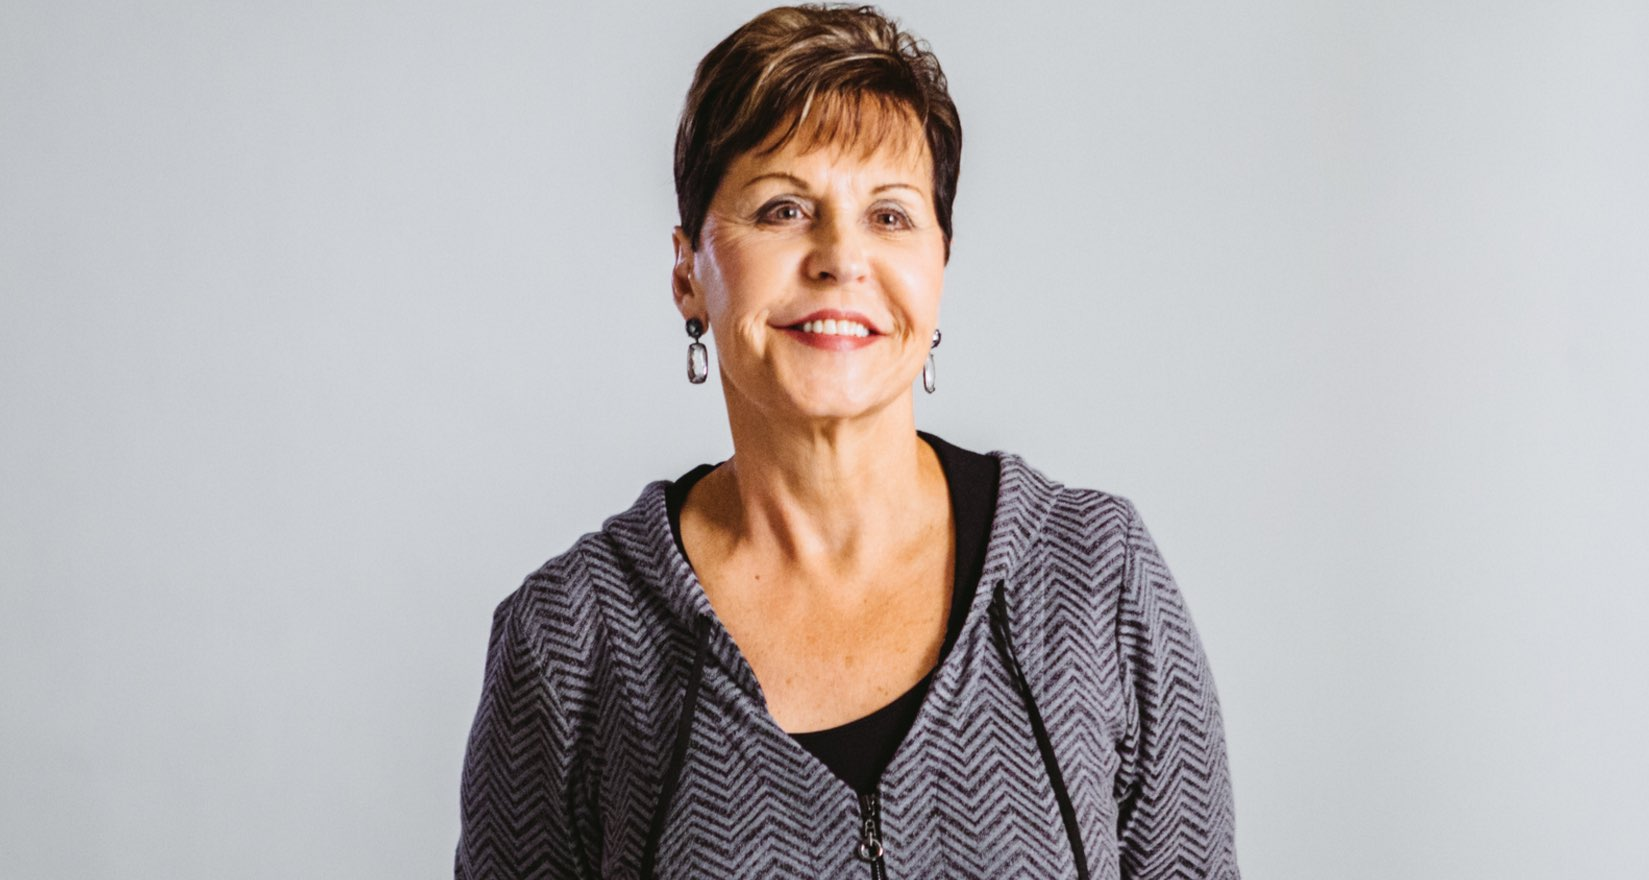 Joyce Meyer Phone Number, Email, Fan Mail, Address, Biography, Agent, Manager, Mailing address, Contact Info, Mailing Addresses